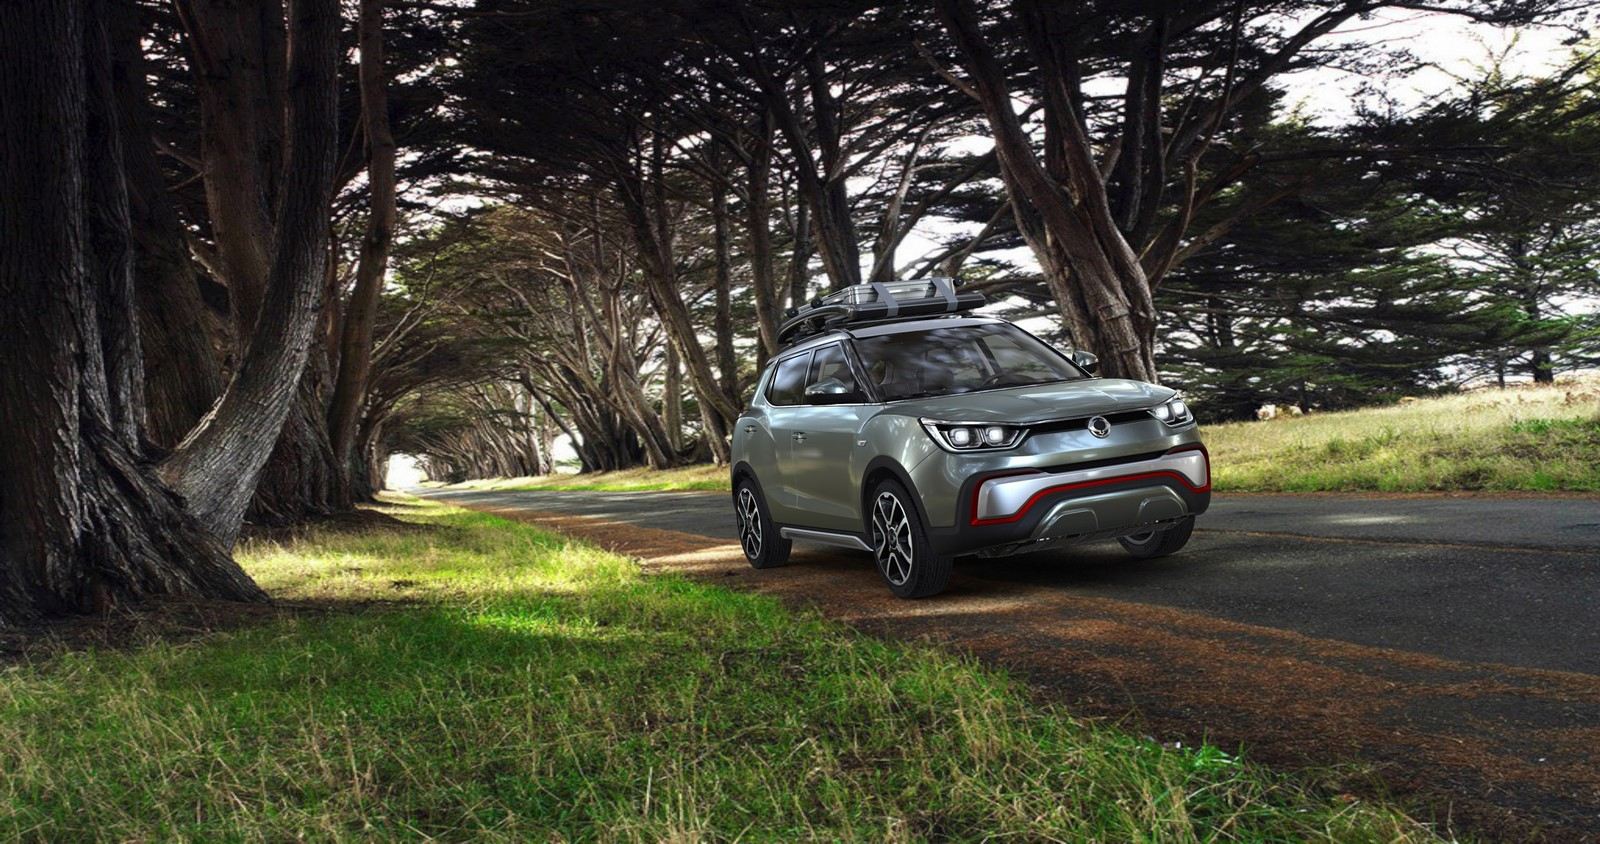 2019 SsangYong XIV Adventure Concept photo - 4